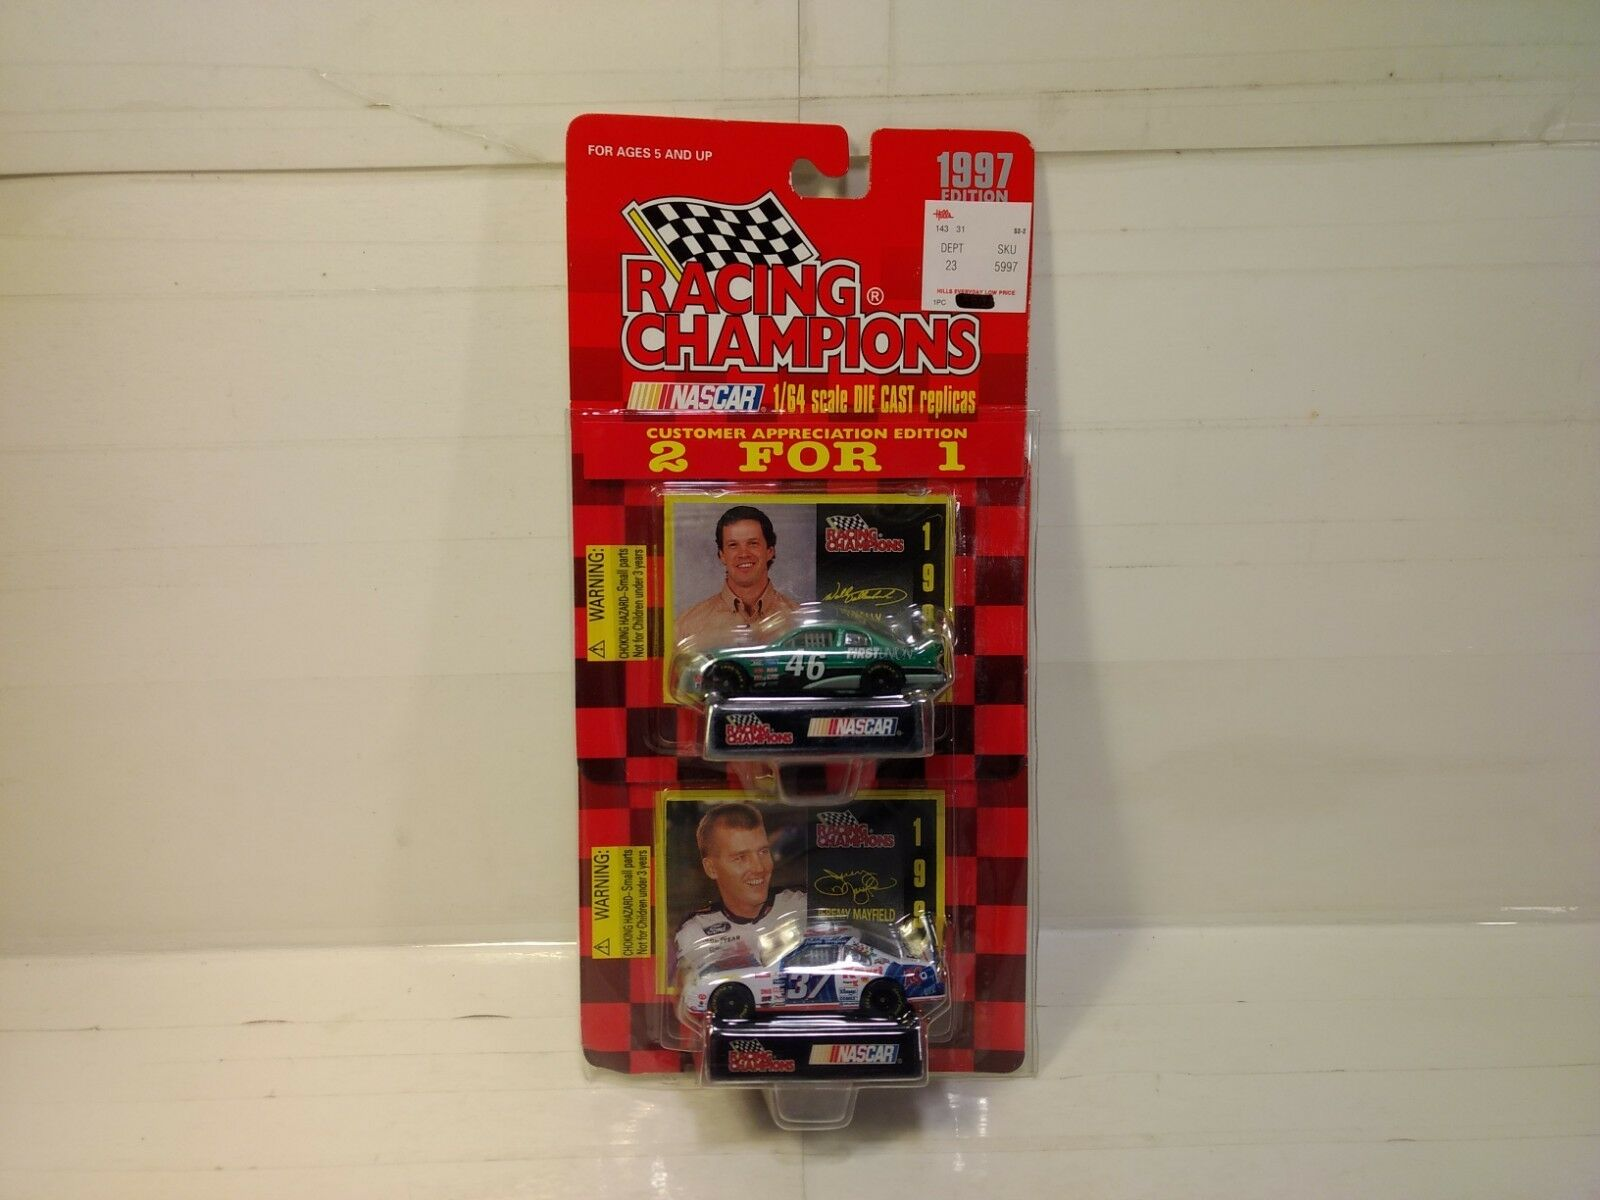 Racing Champions 1997 Dallenbach Jeremy Mayfield 2 Auto Set 1 64 Skala-Modelle